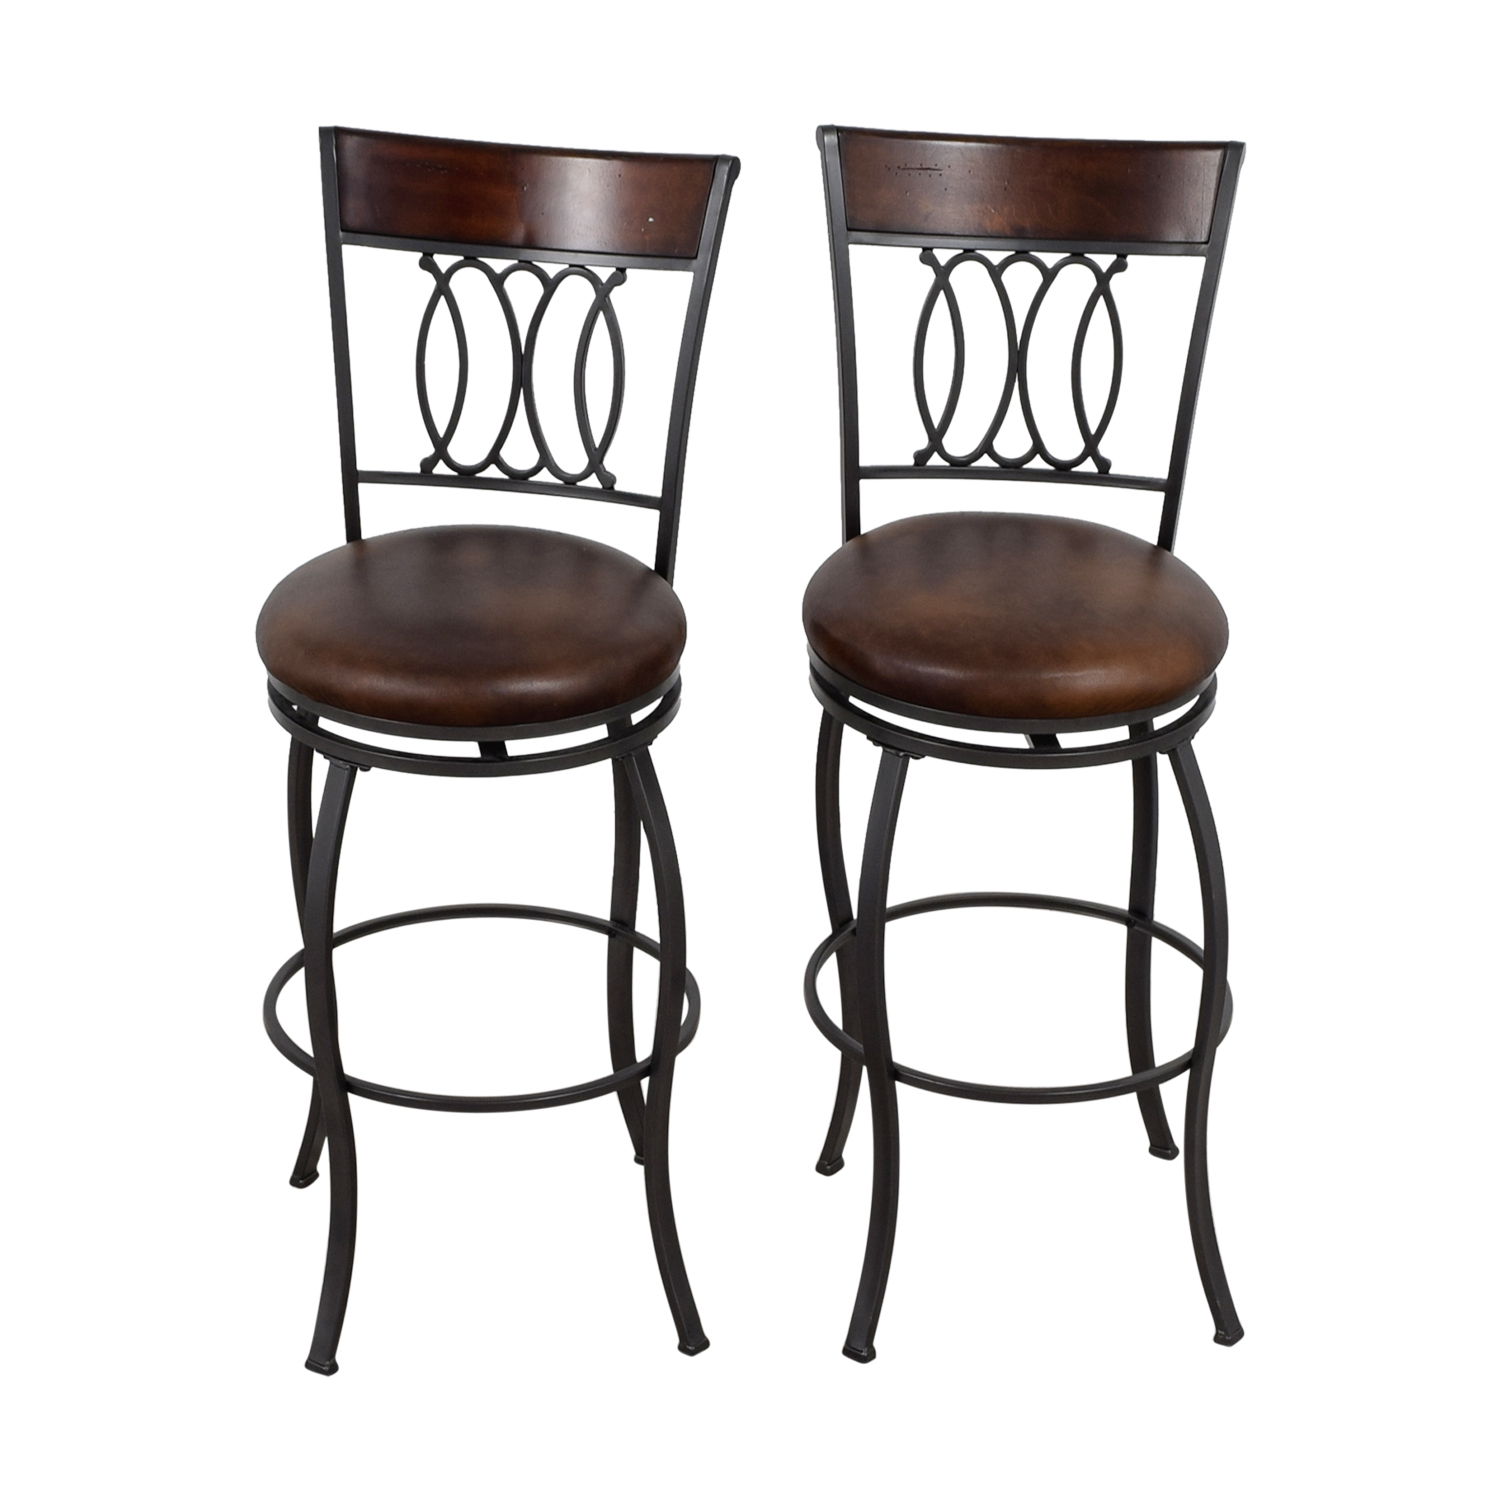 73 Off Bob 39 S Furniture Bob 39 S Furniture Brown Swivel Bar Stools Chairs